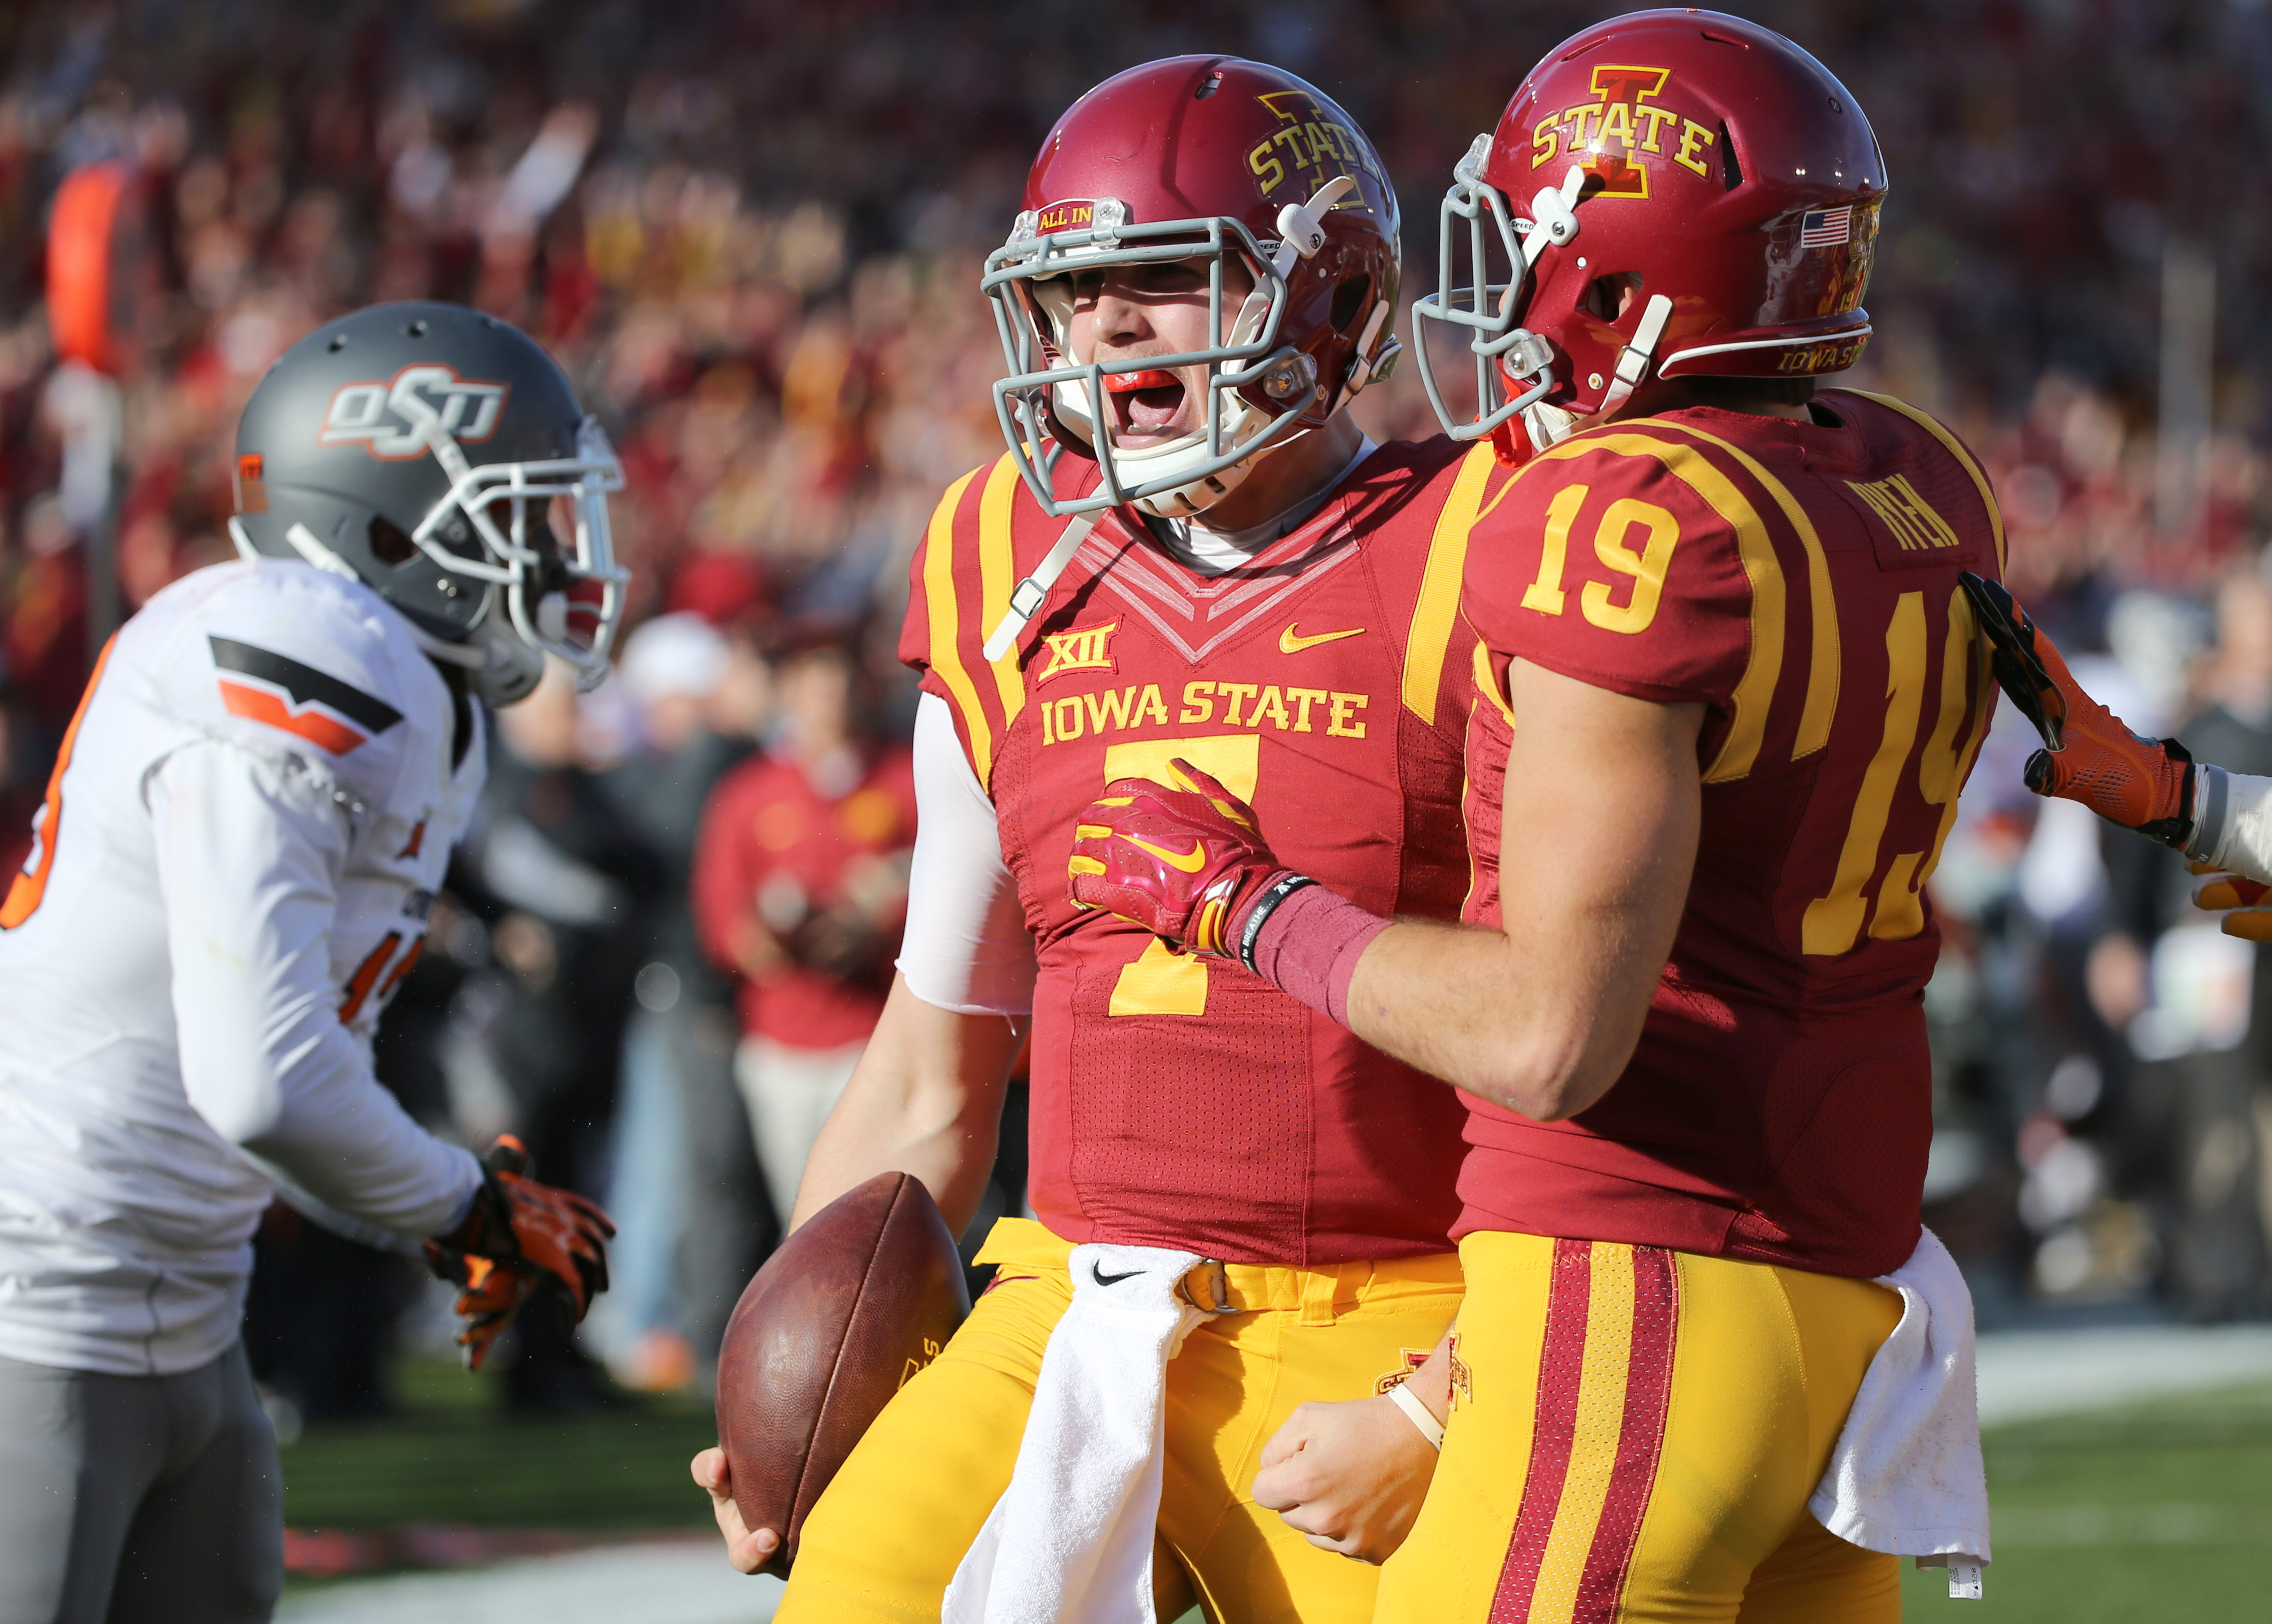 Iowa State quarterback Joel Lanning, center, celebrates with wide receiver Trever Ryen after a touchdown run during the first half of an NCAA college football game against Oklahoma State, Saturday, Nov. 14, 2015, in Ames, Iowa. (AP Photo/Justin Hayworth)